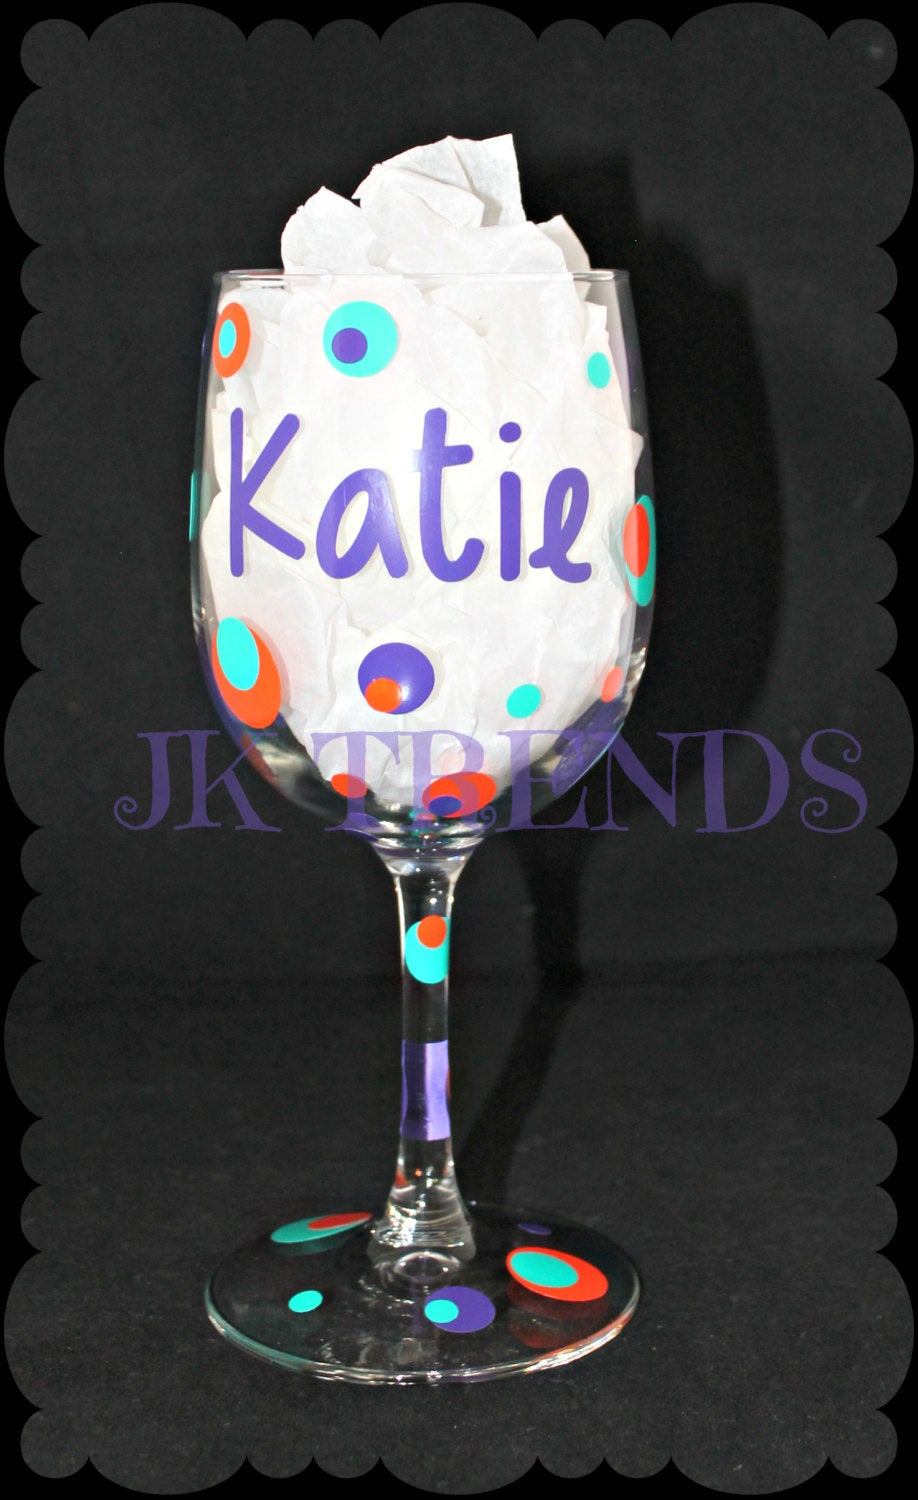 Personalized Wine Glass - Name - Birthday - Party - Celebration - Gift - Shower - Bachelorette - Girls/Women